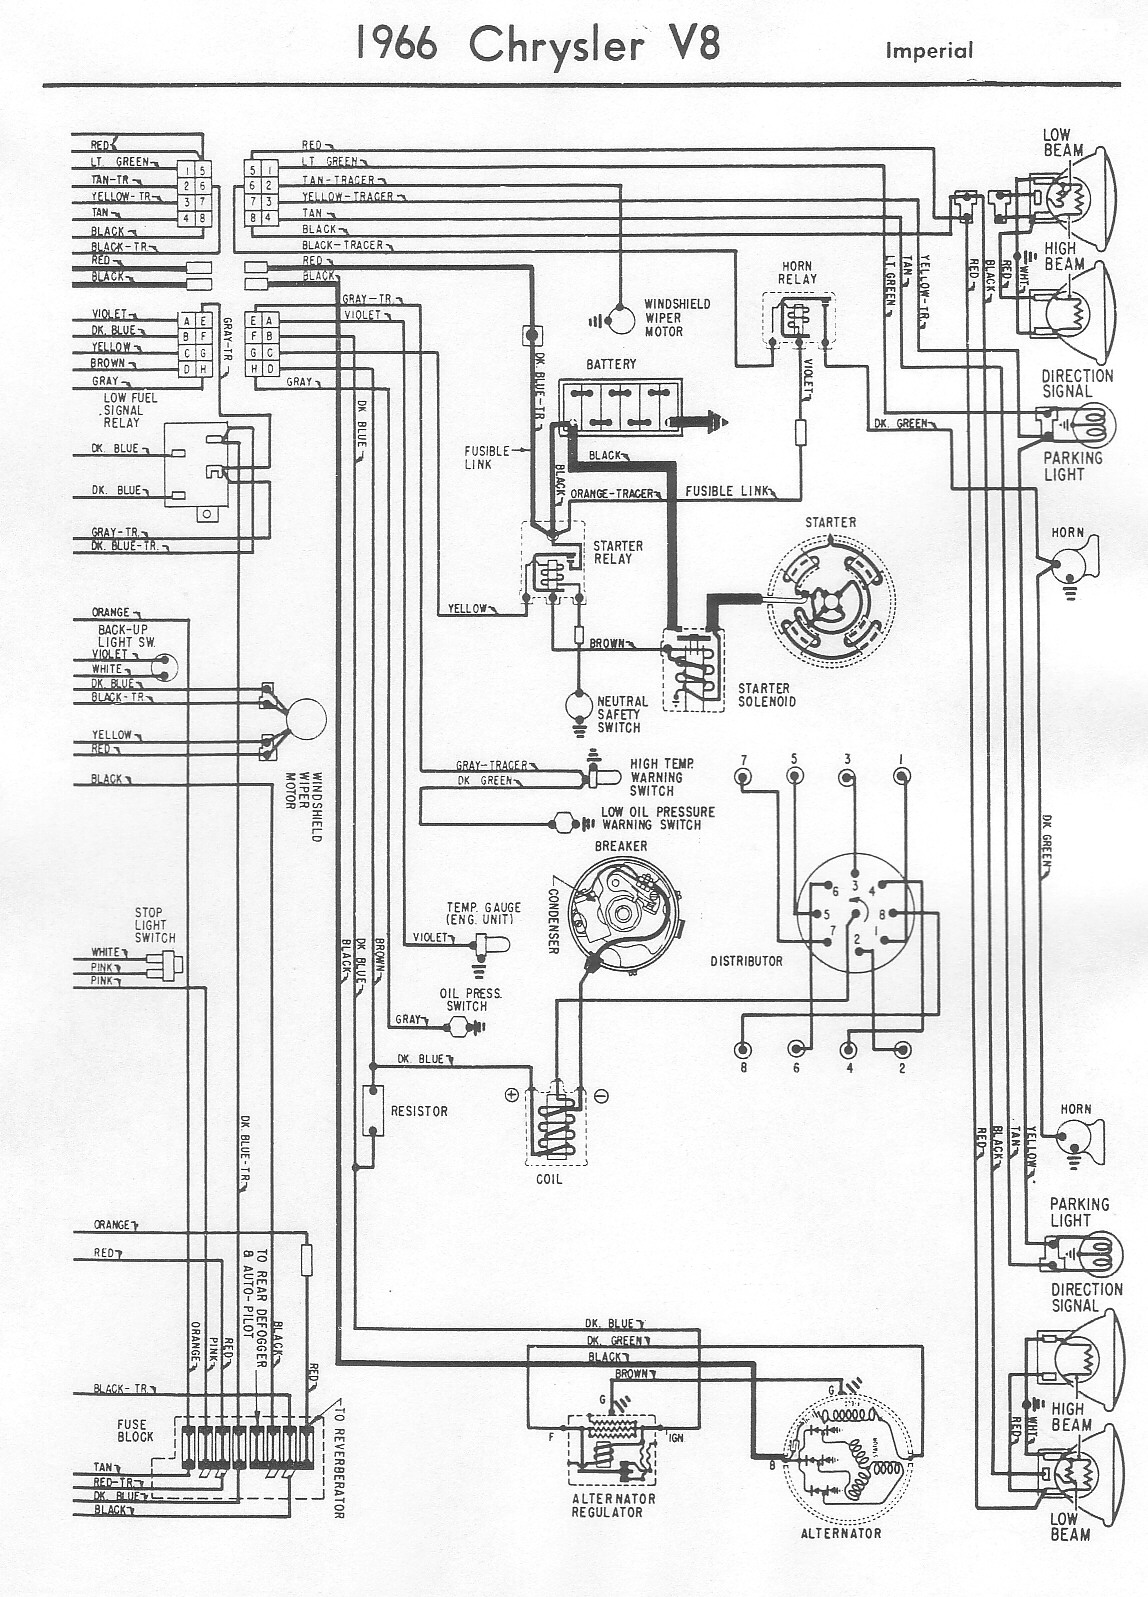 Awesome Oha Wiring Diagram Ideas - Best Image Schematics - imusa.us